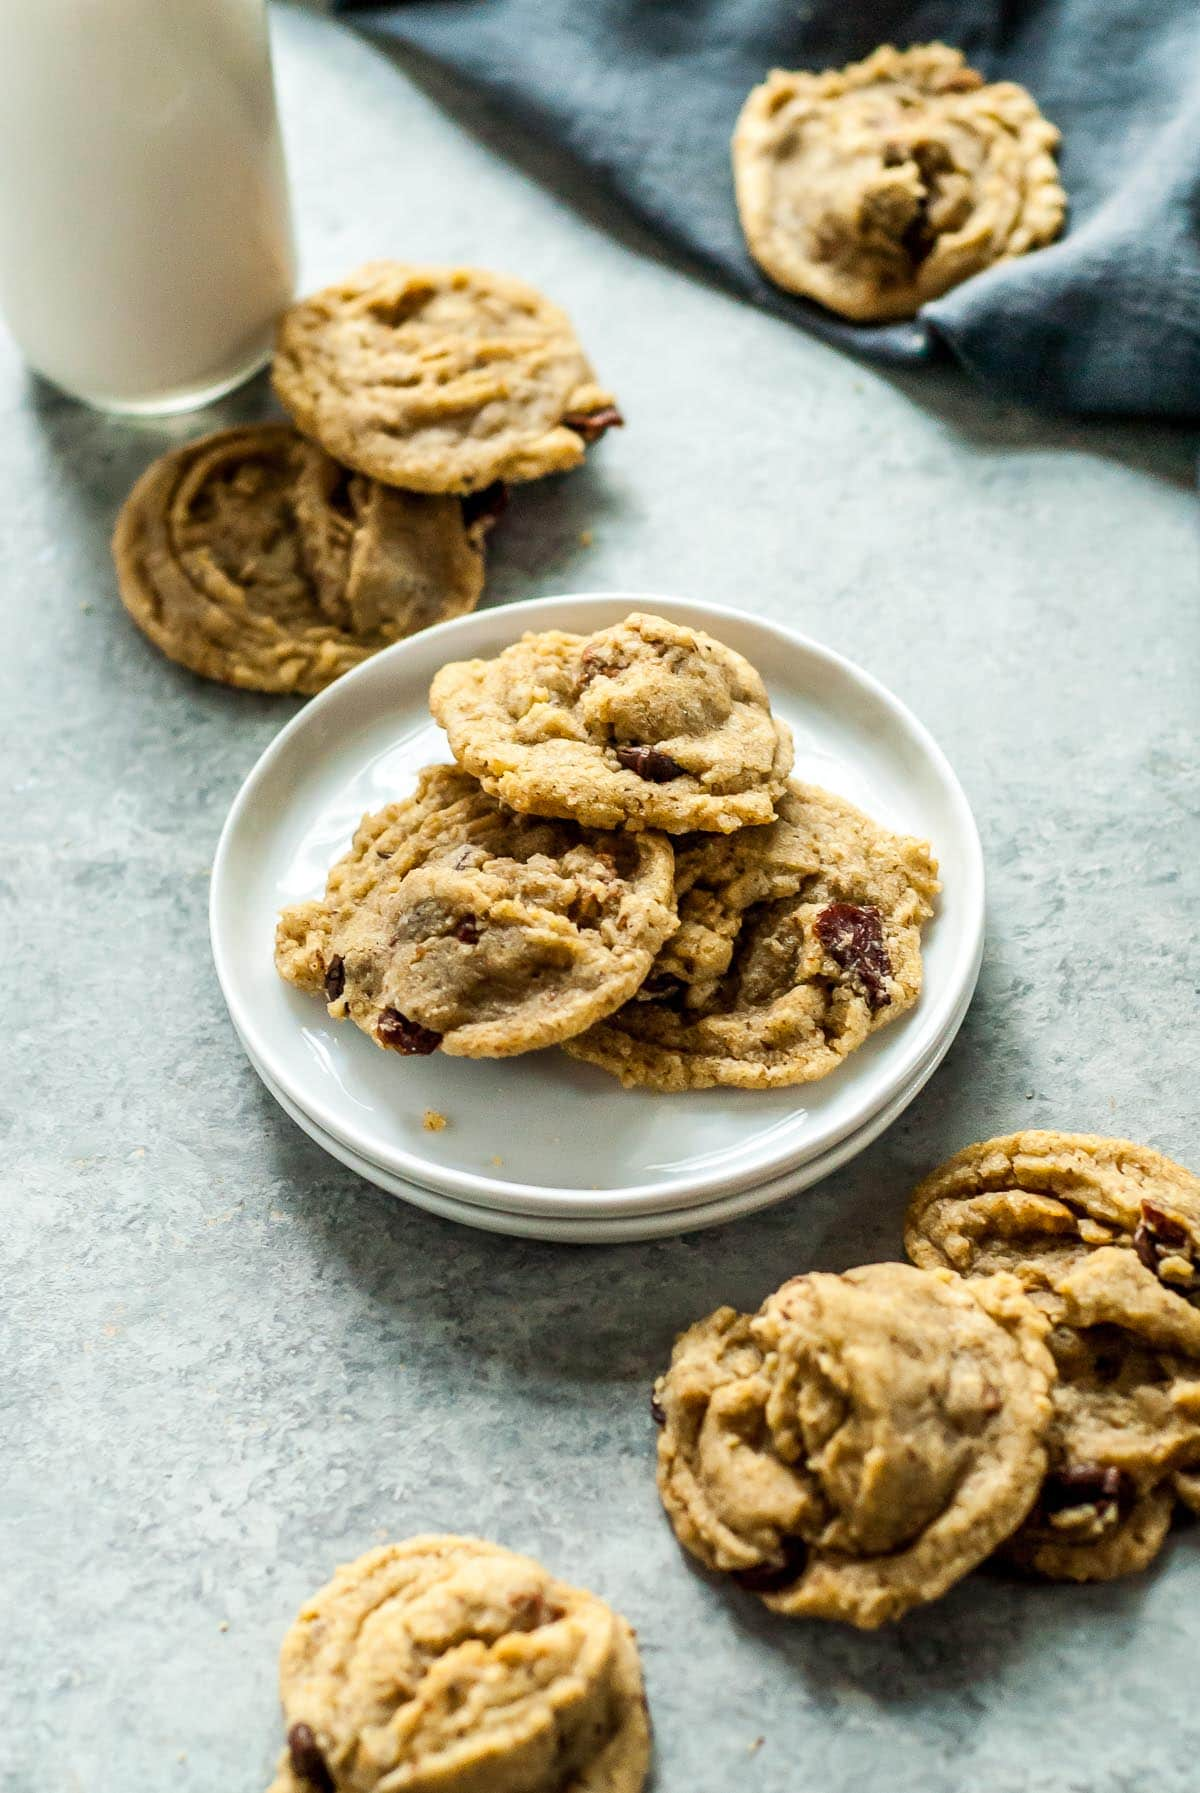 cookies on a plate with glass of milk